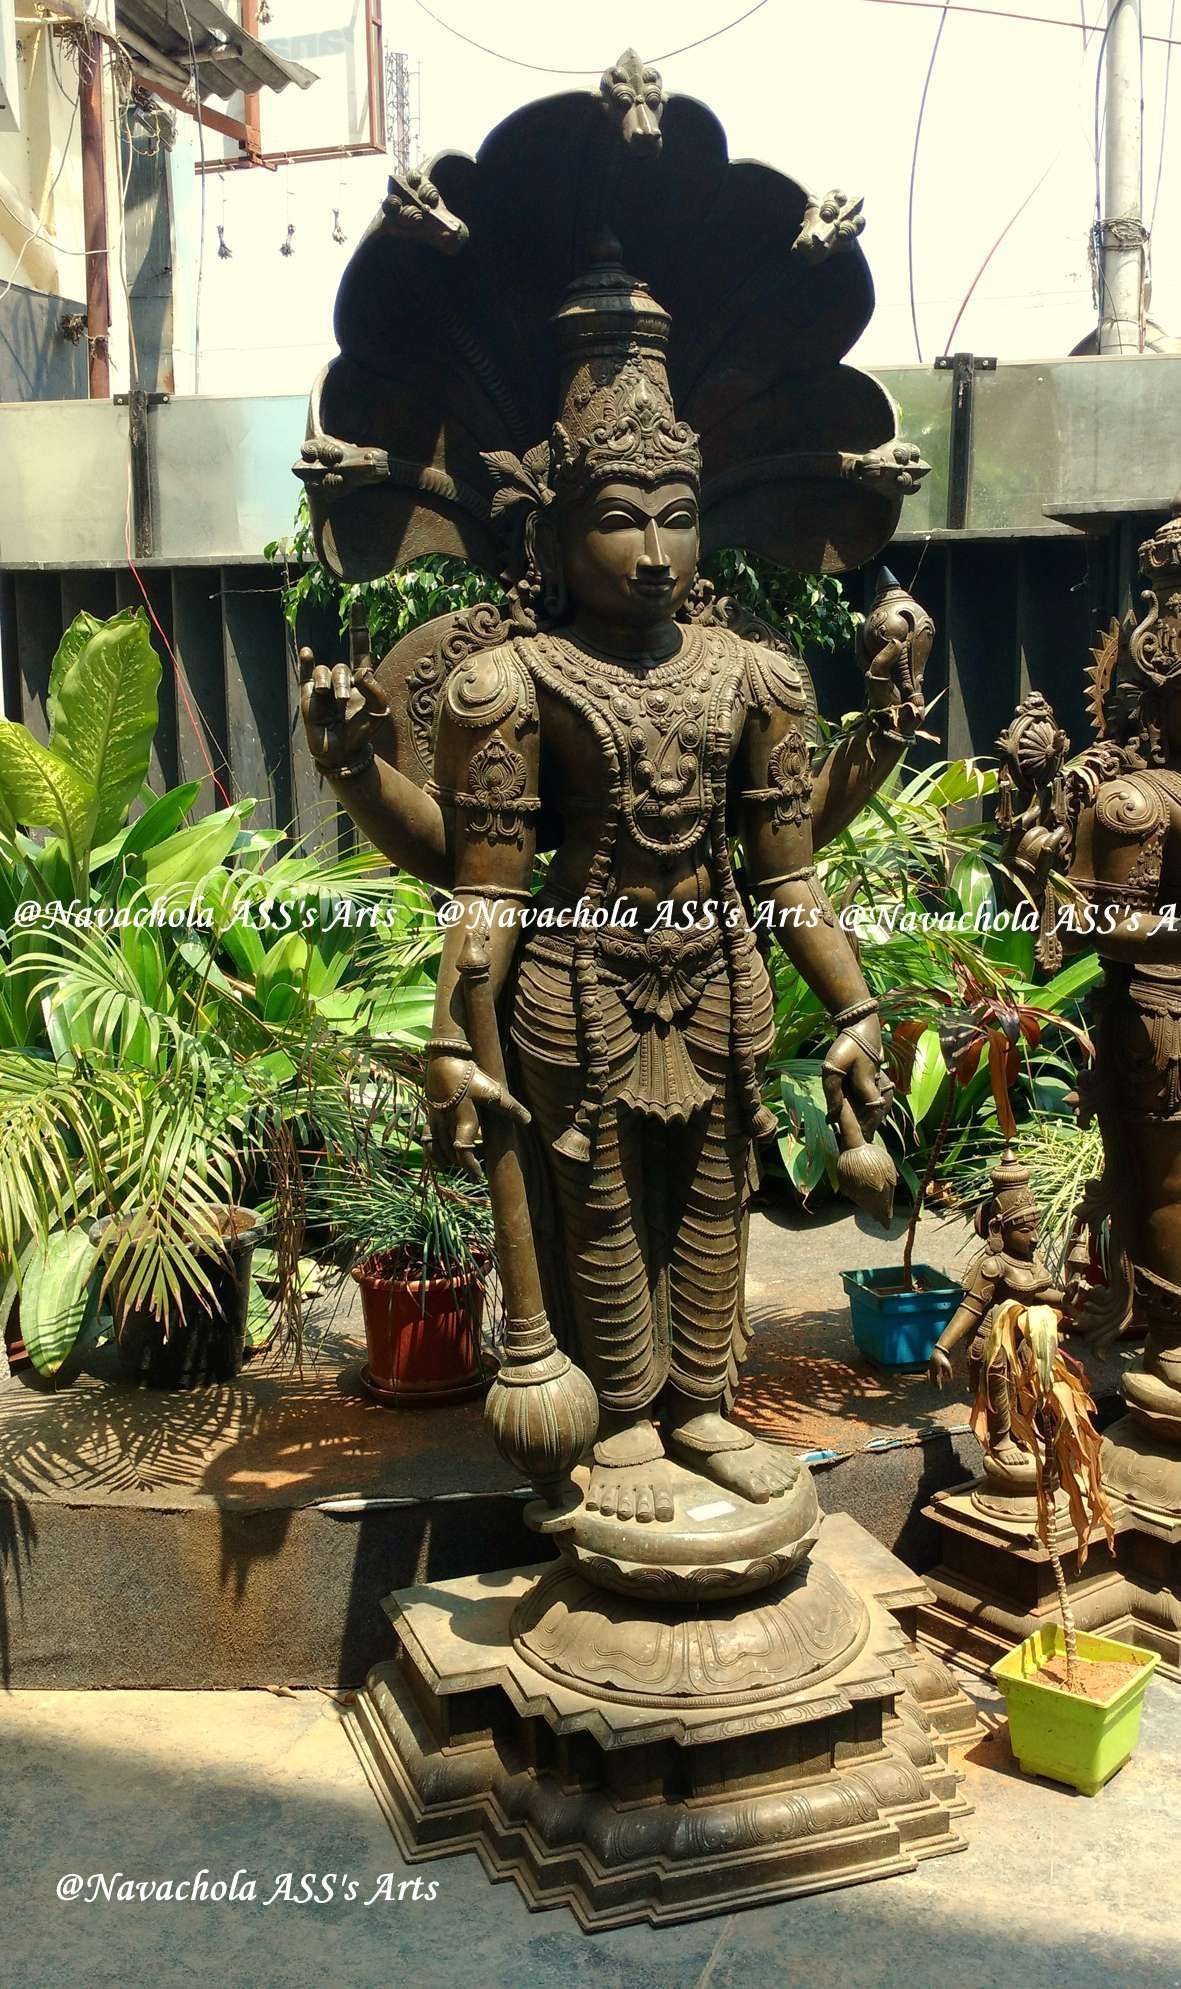 Authentic handcrafted art, south indian made bronze icon